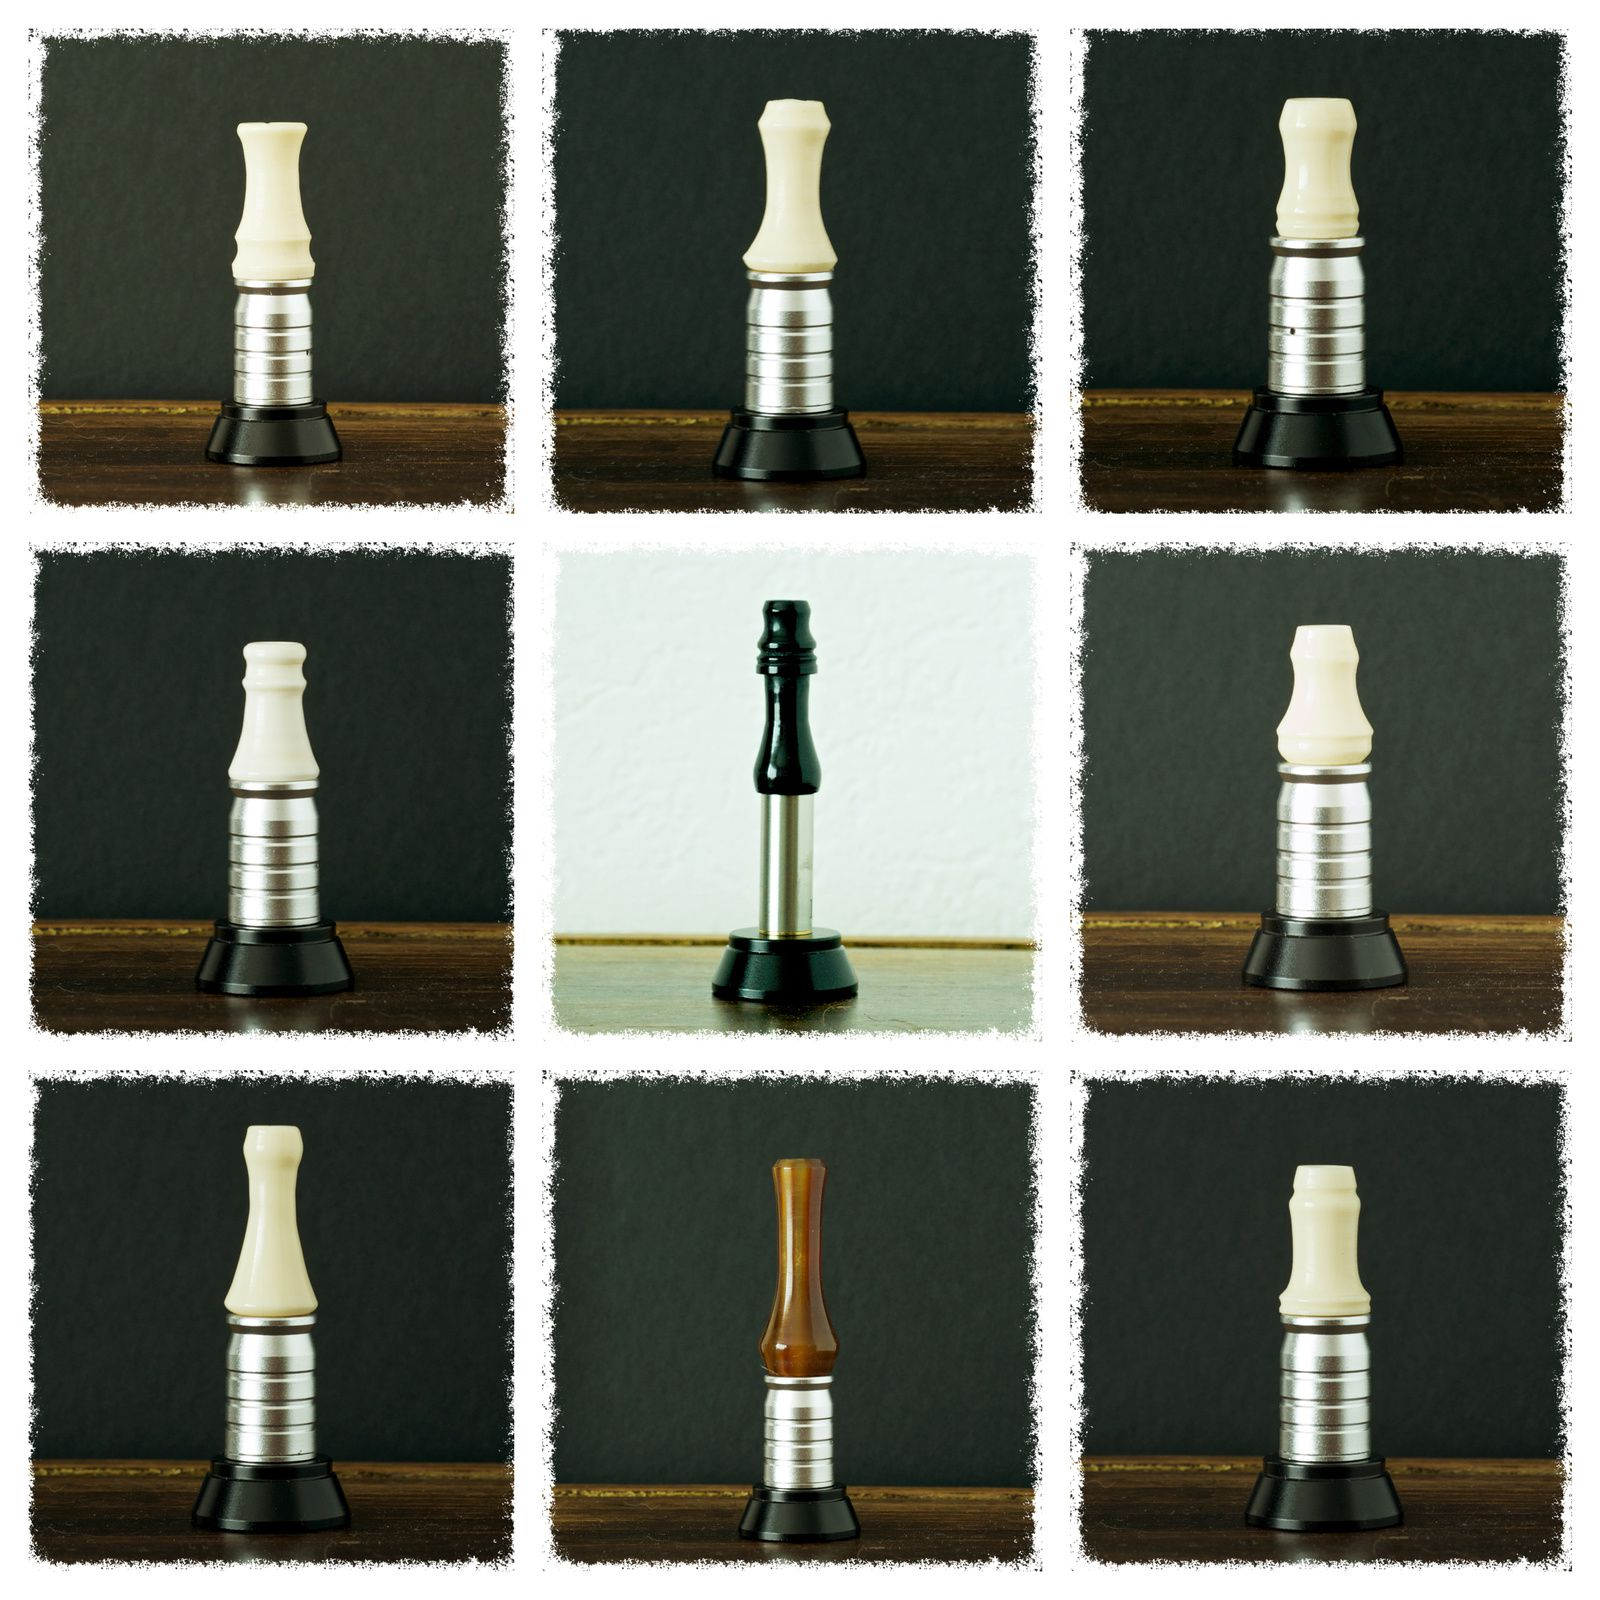 e-Huge 2x26650 et des drip tips